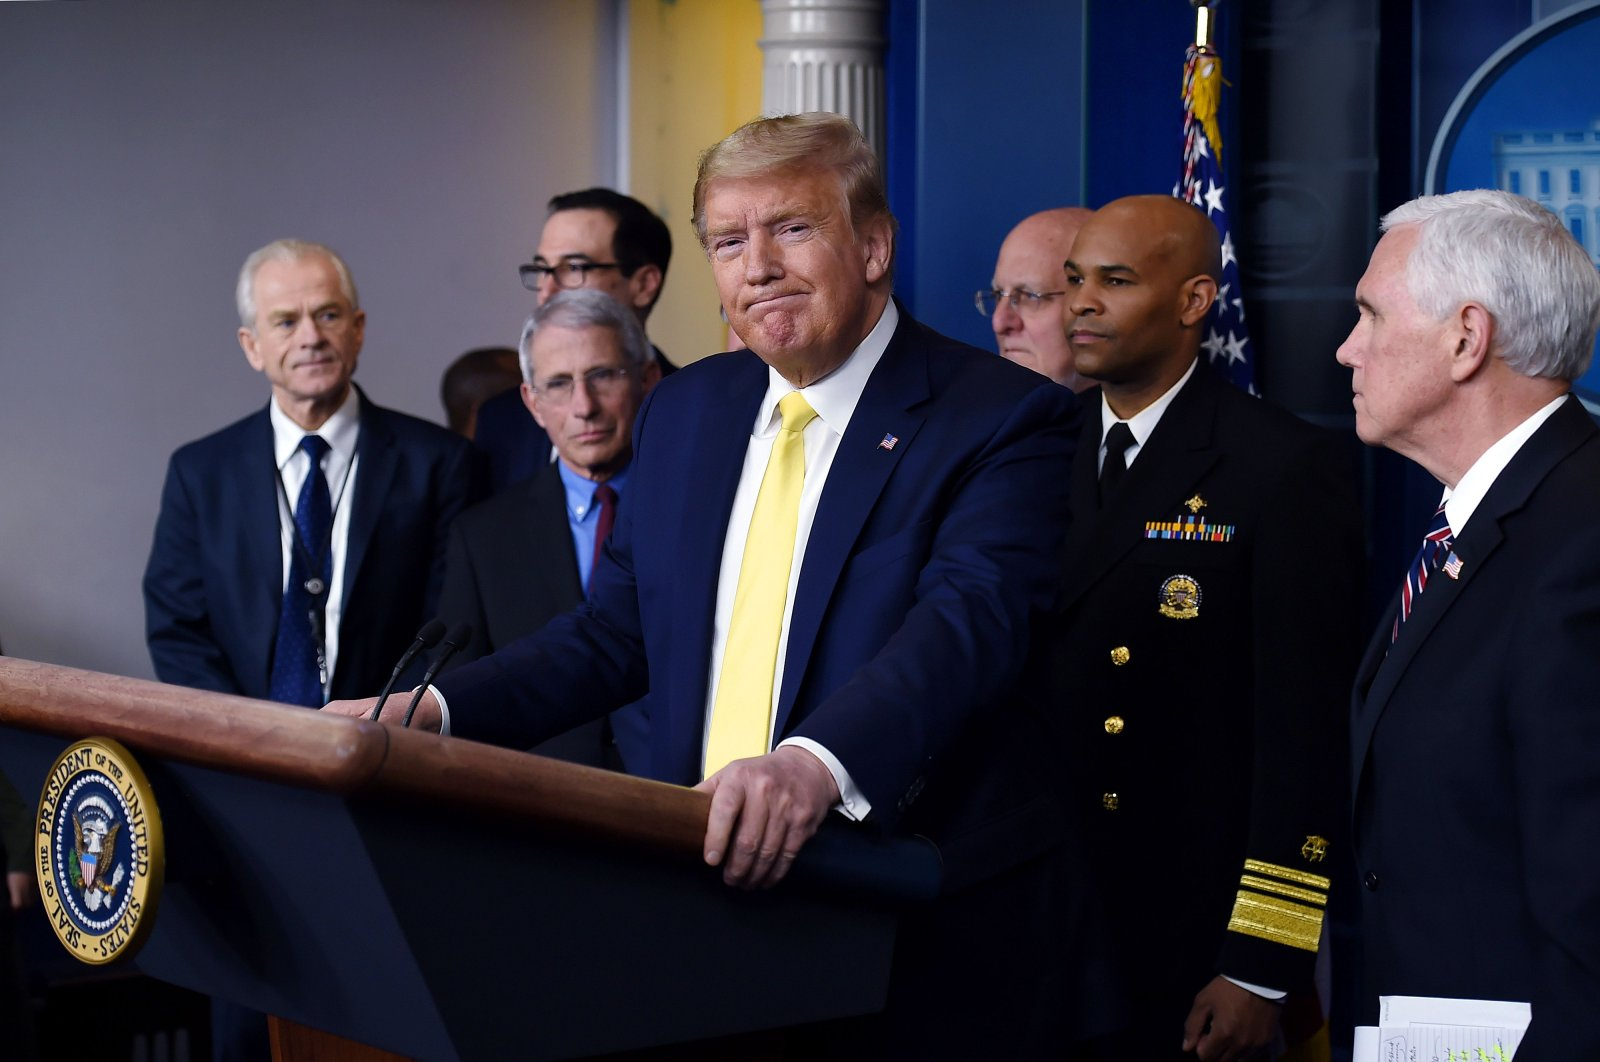 U.S. President Donald Trump speaks about the COVID-19 (coronavirus) alongside Vice President Mike Pence and members of the Coronavirus Task Force at the White House in Washington, D.C., March 9, 2020. (AFP Photo)